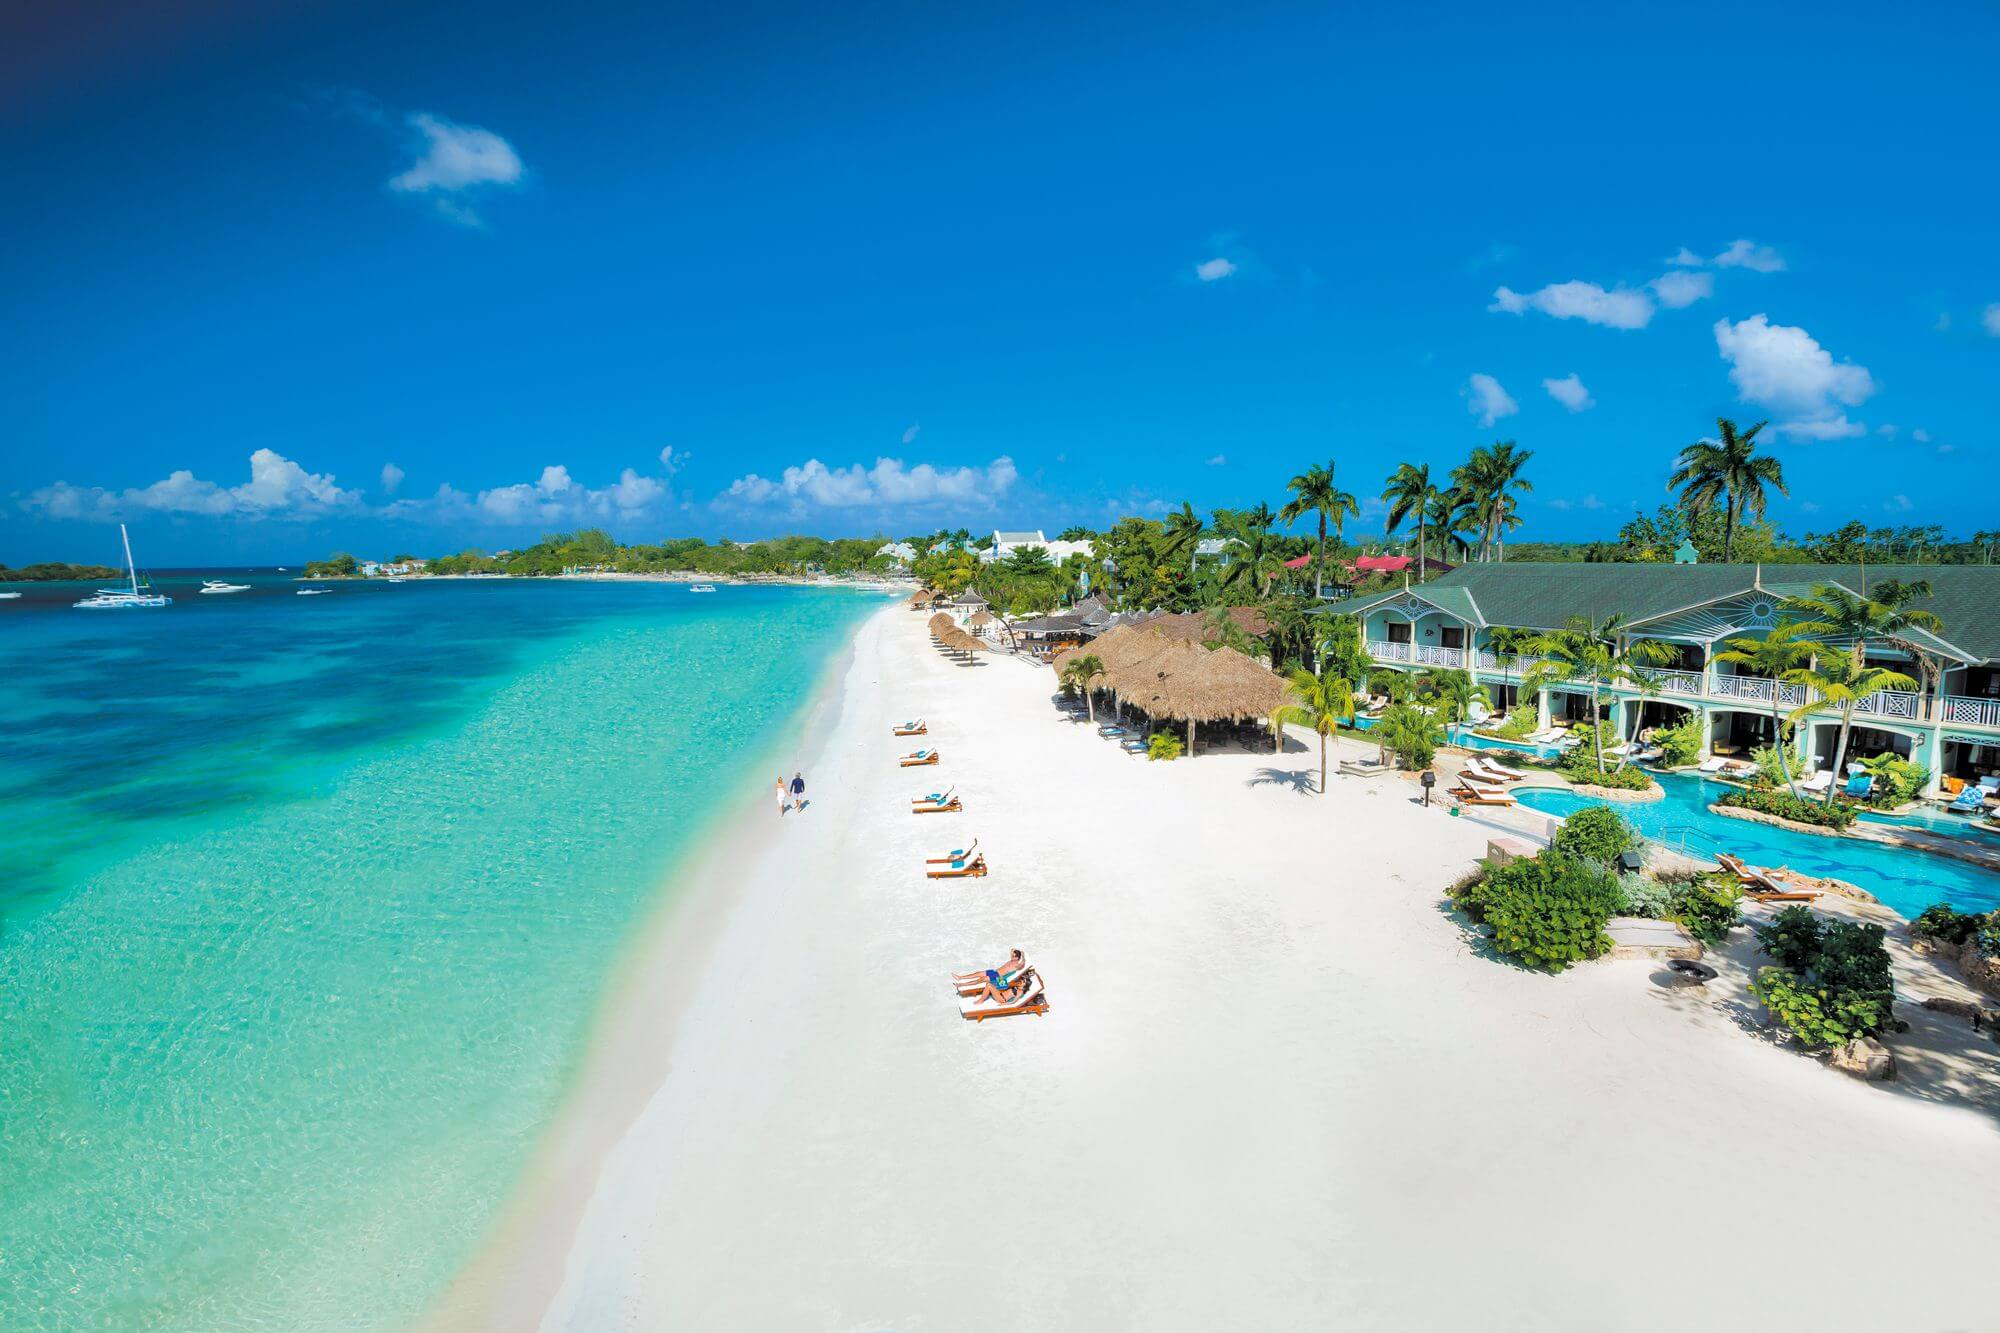 Why you can afford a luxury vacation in the Bahamas